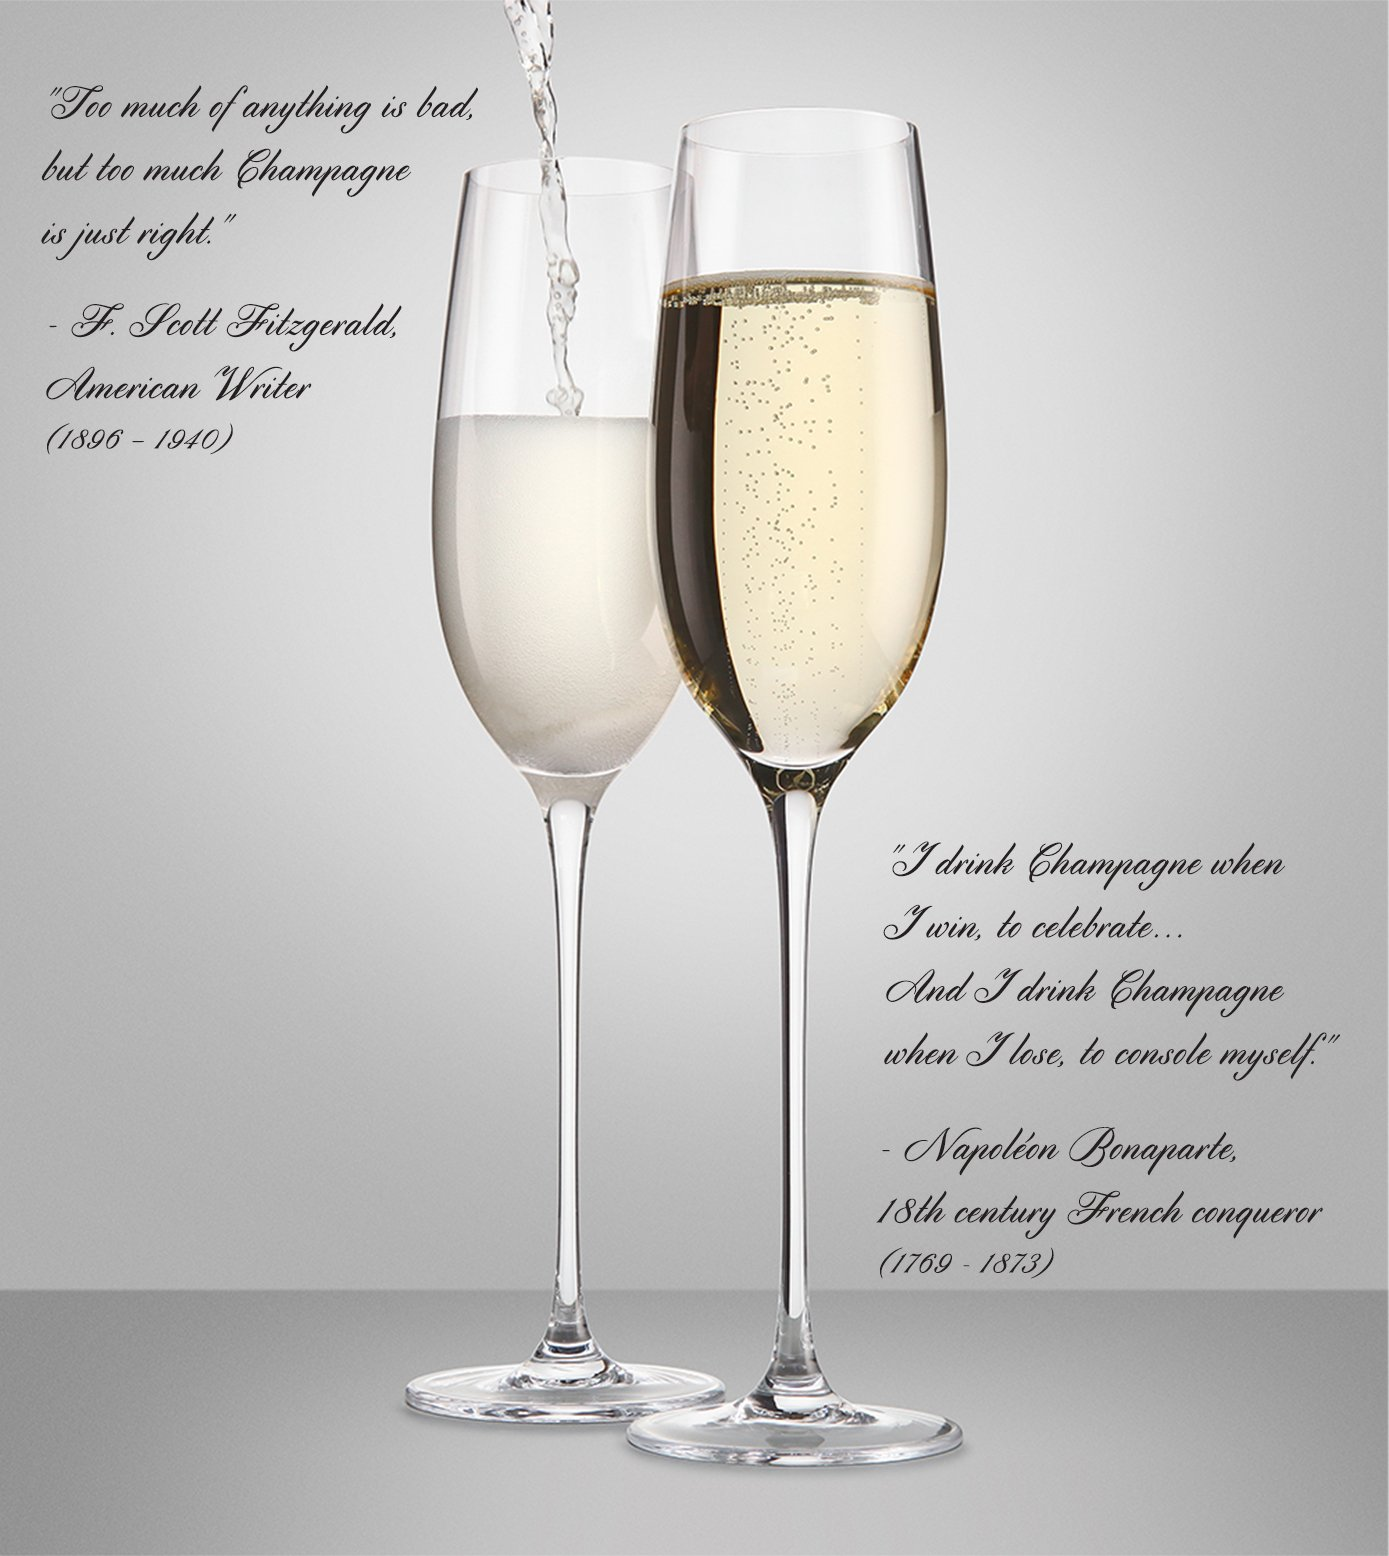 The Excelsior by DUX - Handmade, 100% Lead-Free, Crystal Champagne Flutes, Set of 2 Glasses, Elegant Gift Box by DUX (Image #6)